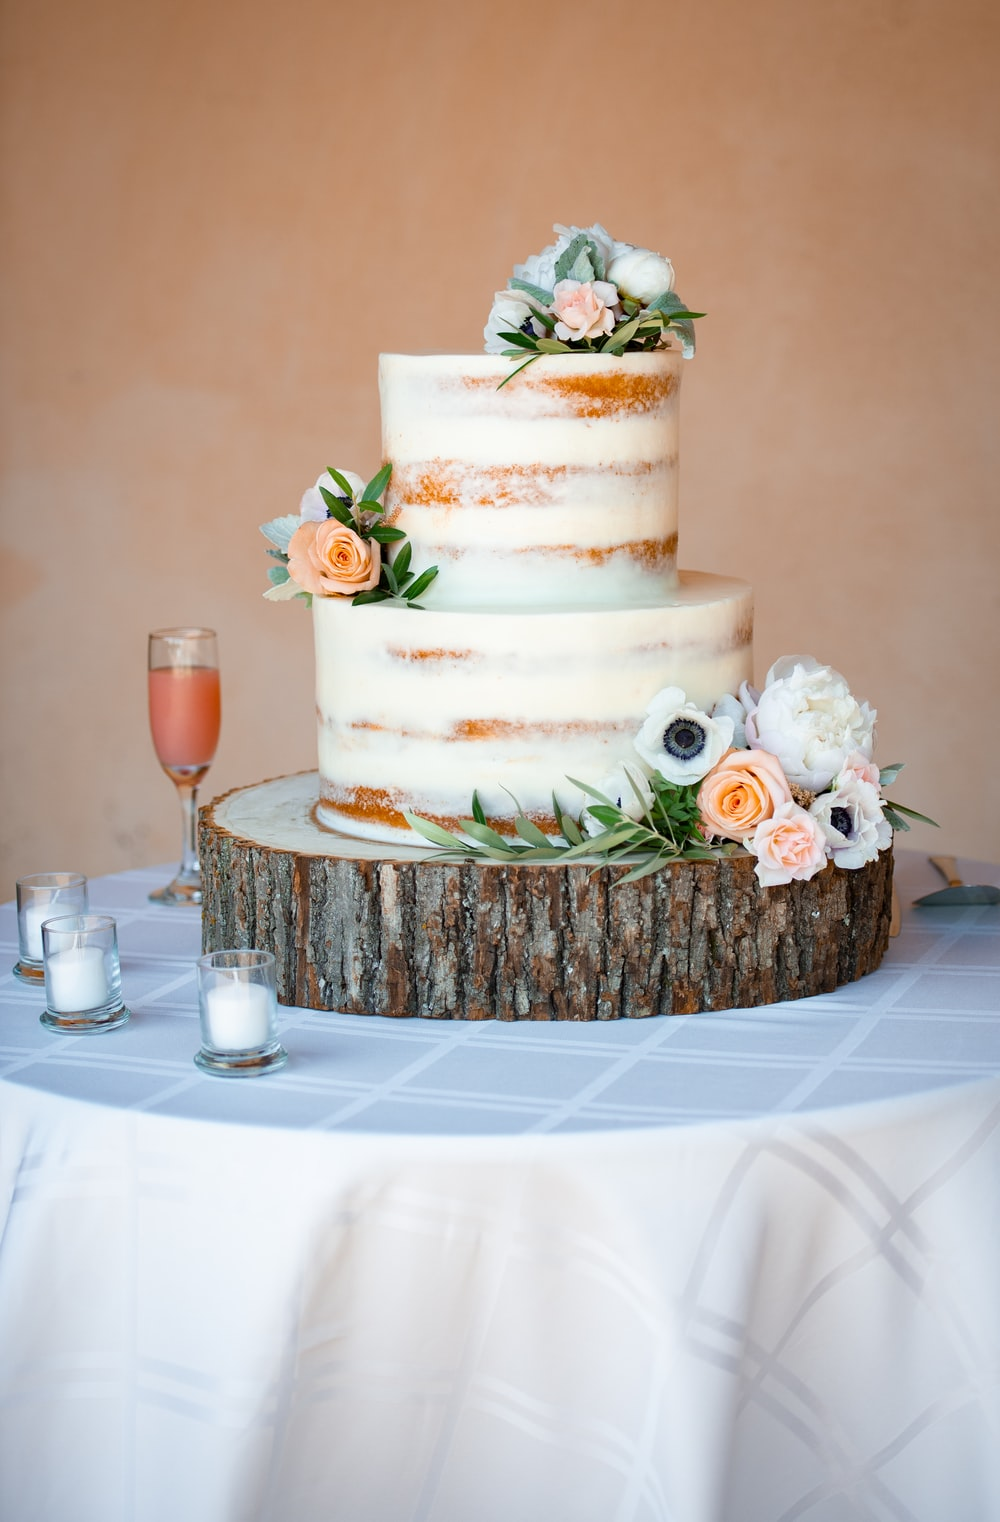 white and brown cake on brown woven tray